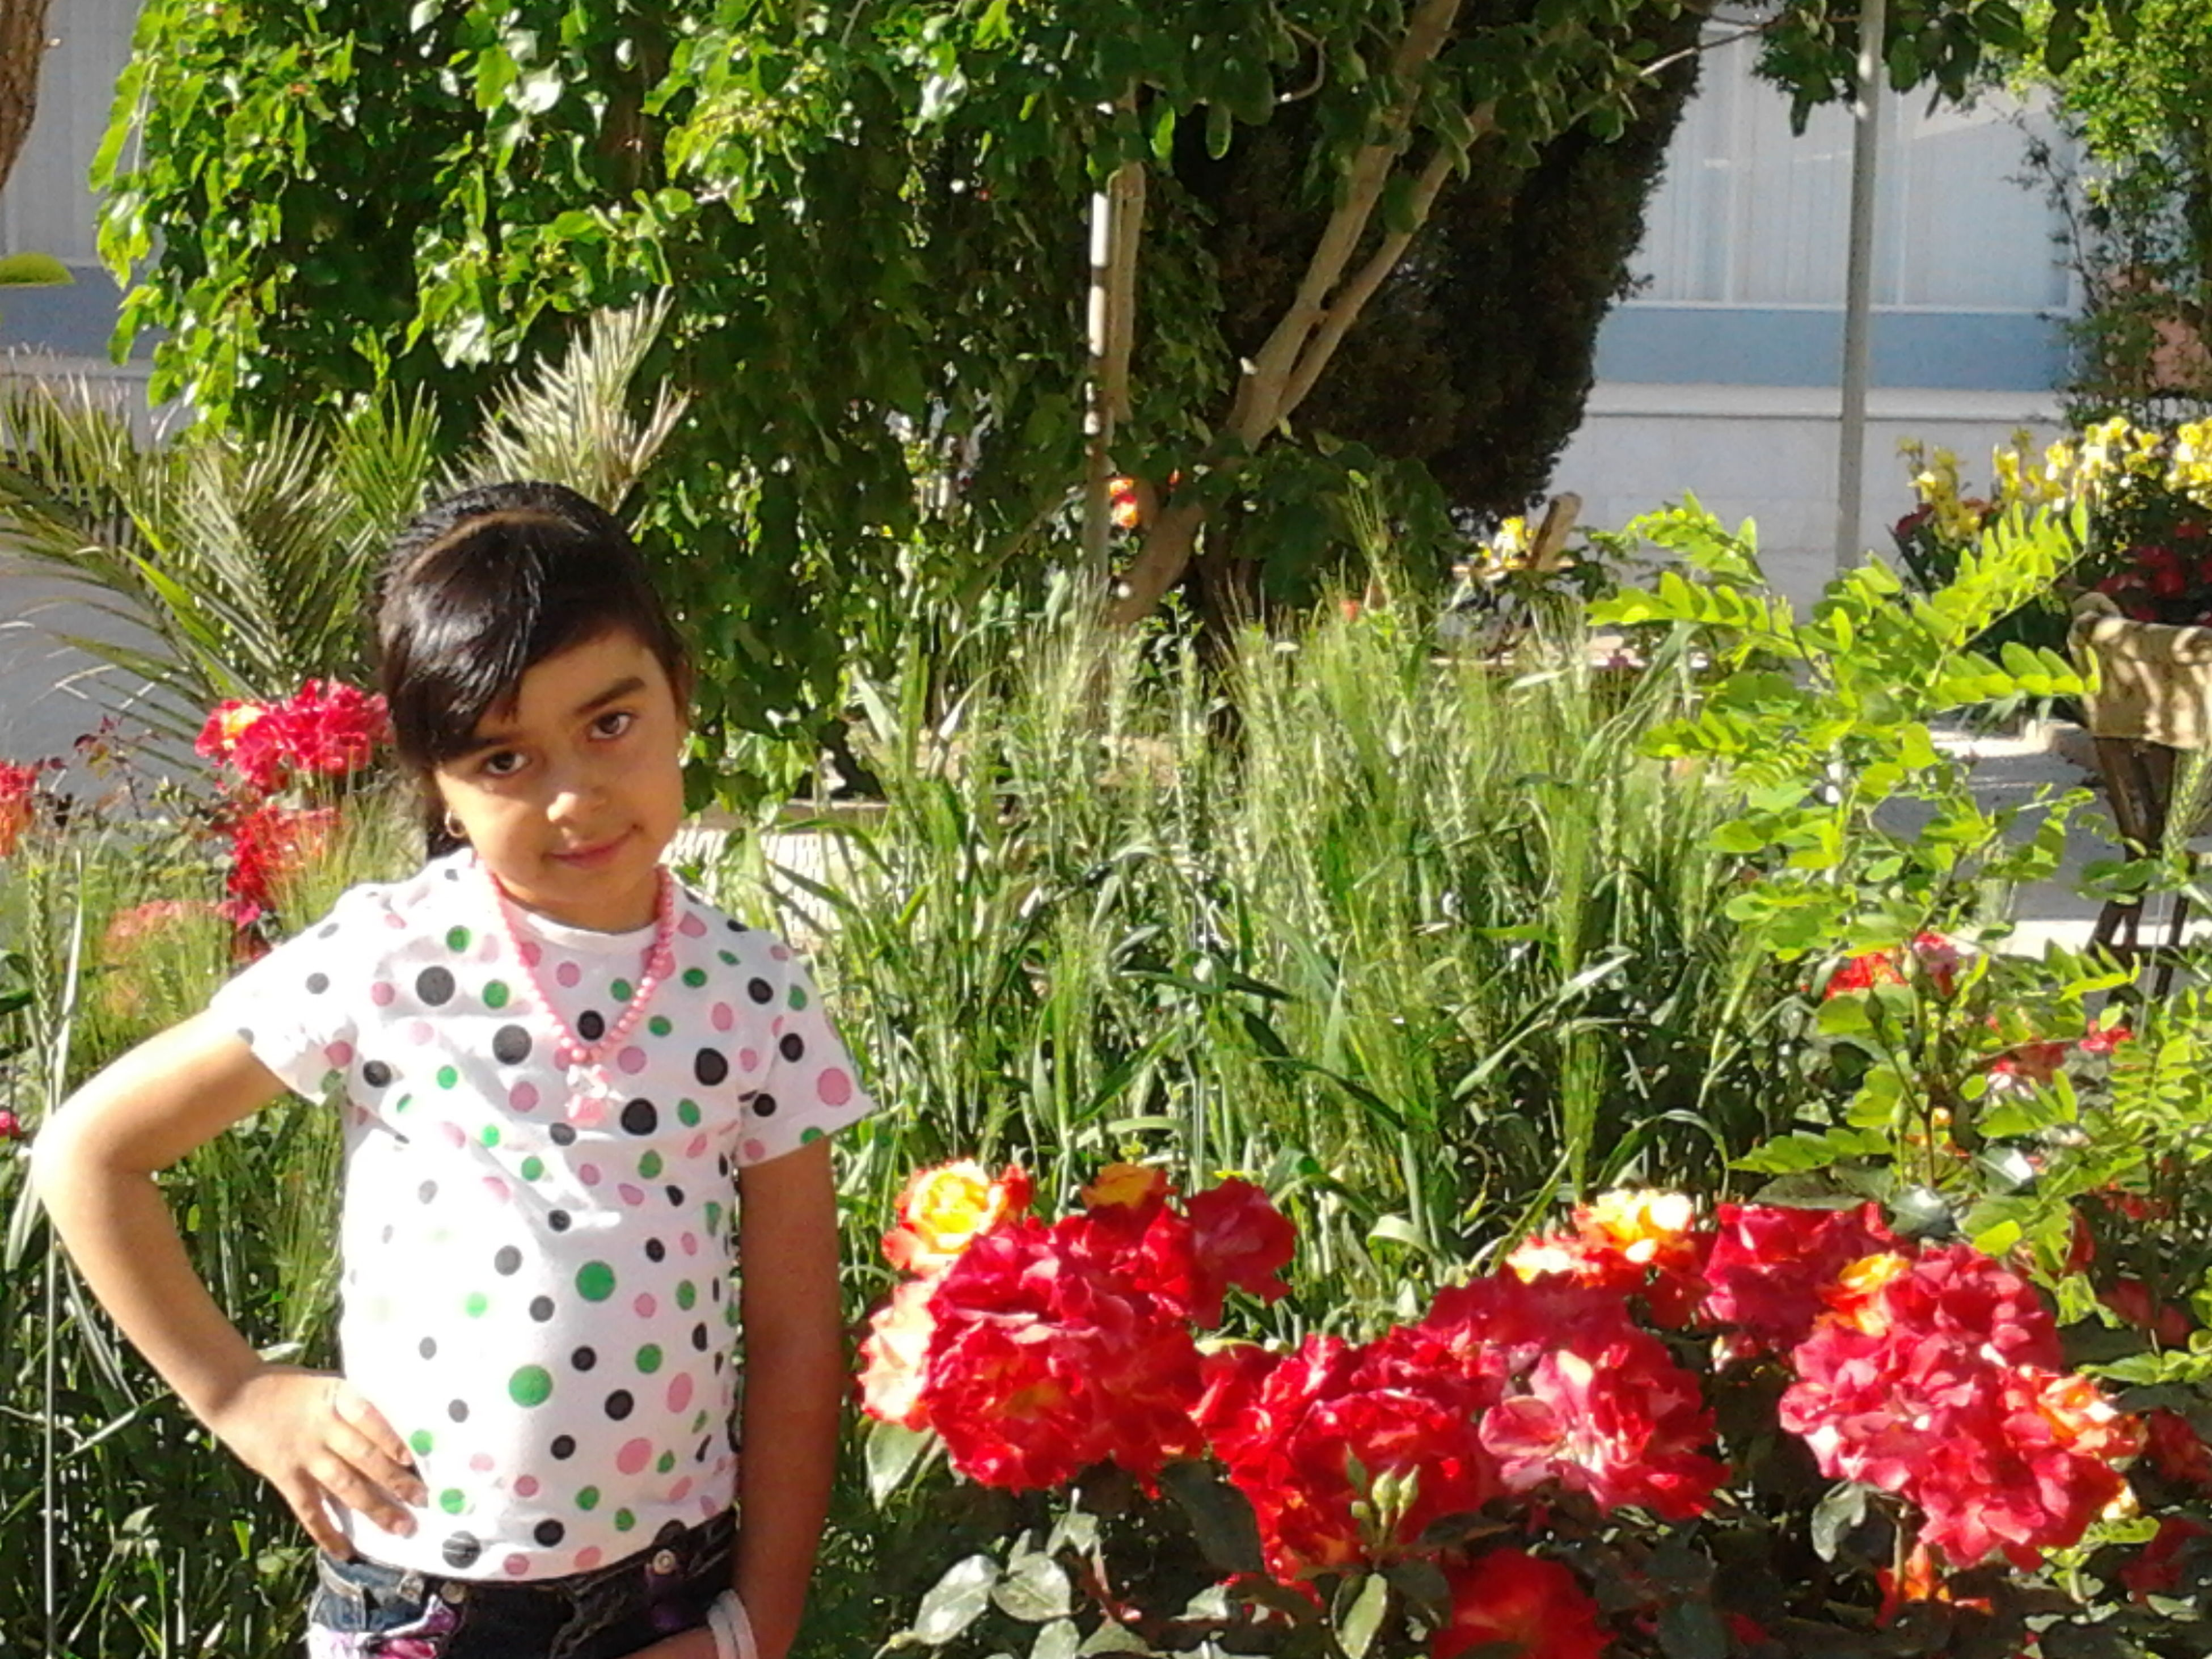 person, lifestyles, leisure activity, childhood, casual clothing, elementary age, smiling, girls, looking at camera, innocence, standing, cute, happiness, flower, portrait, three quarter length, plant, park - man made space